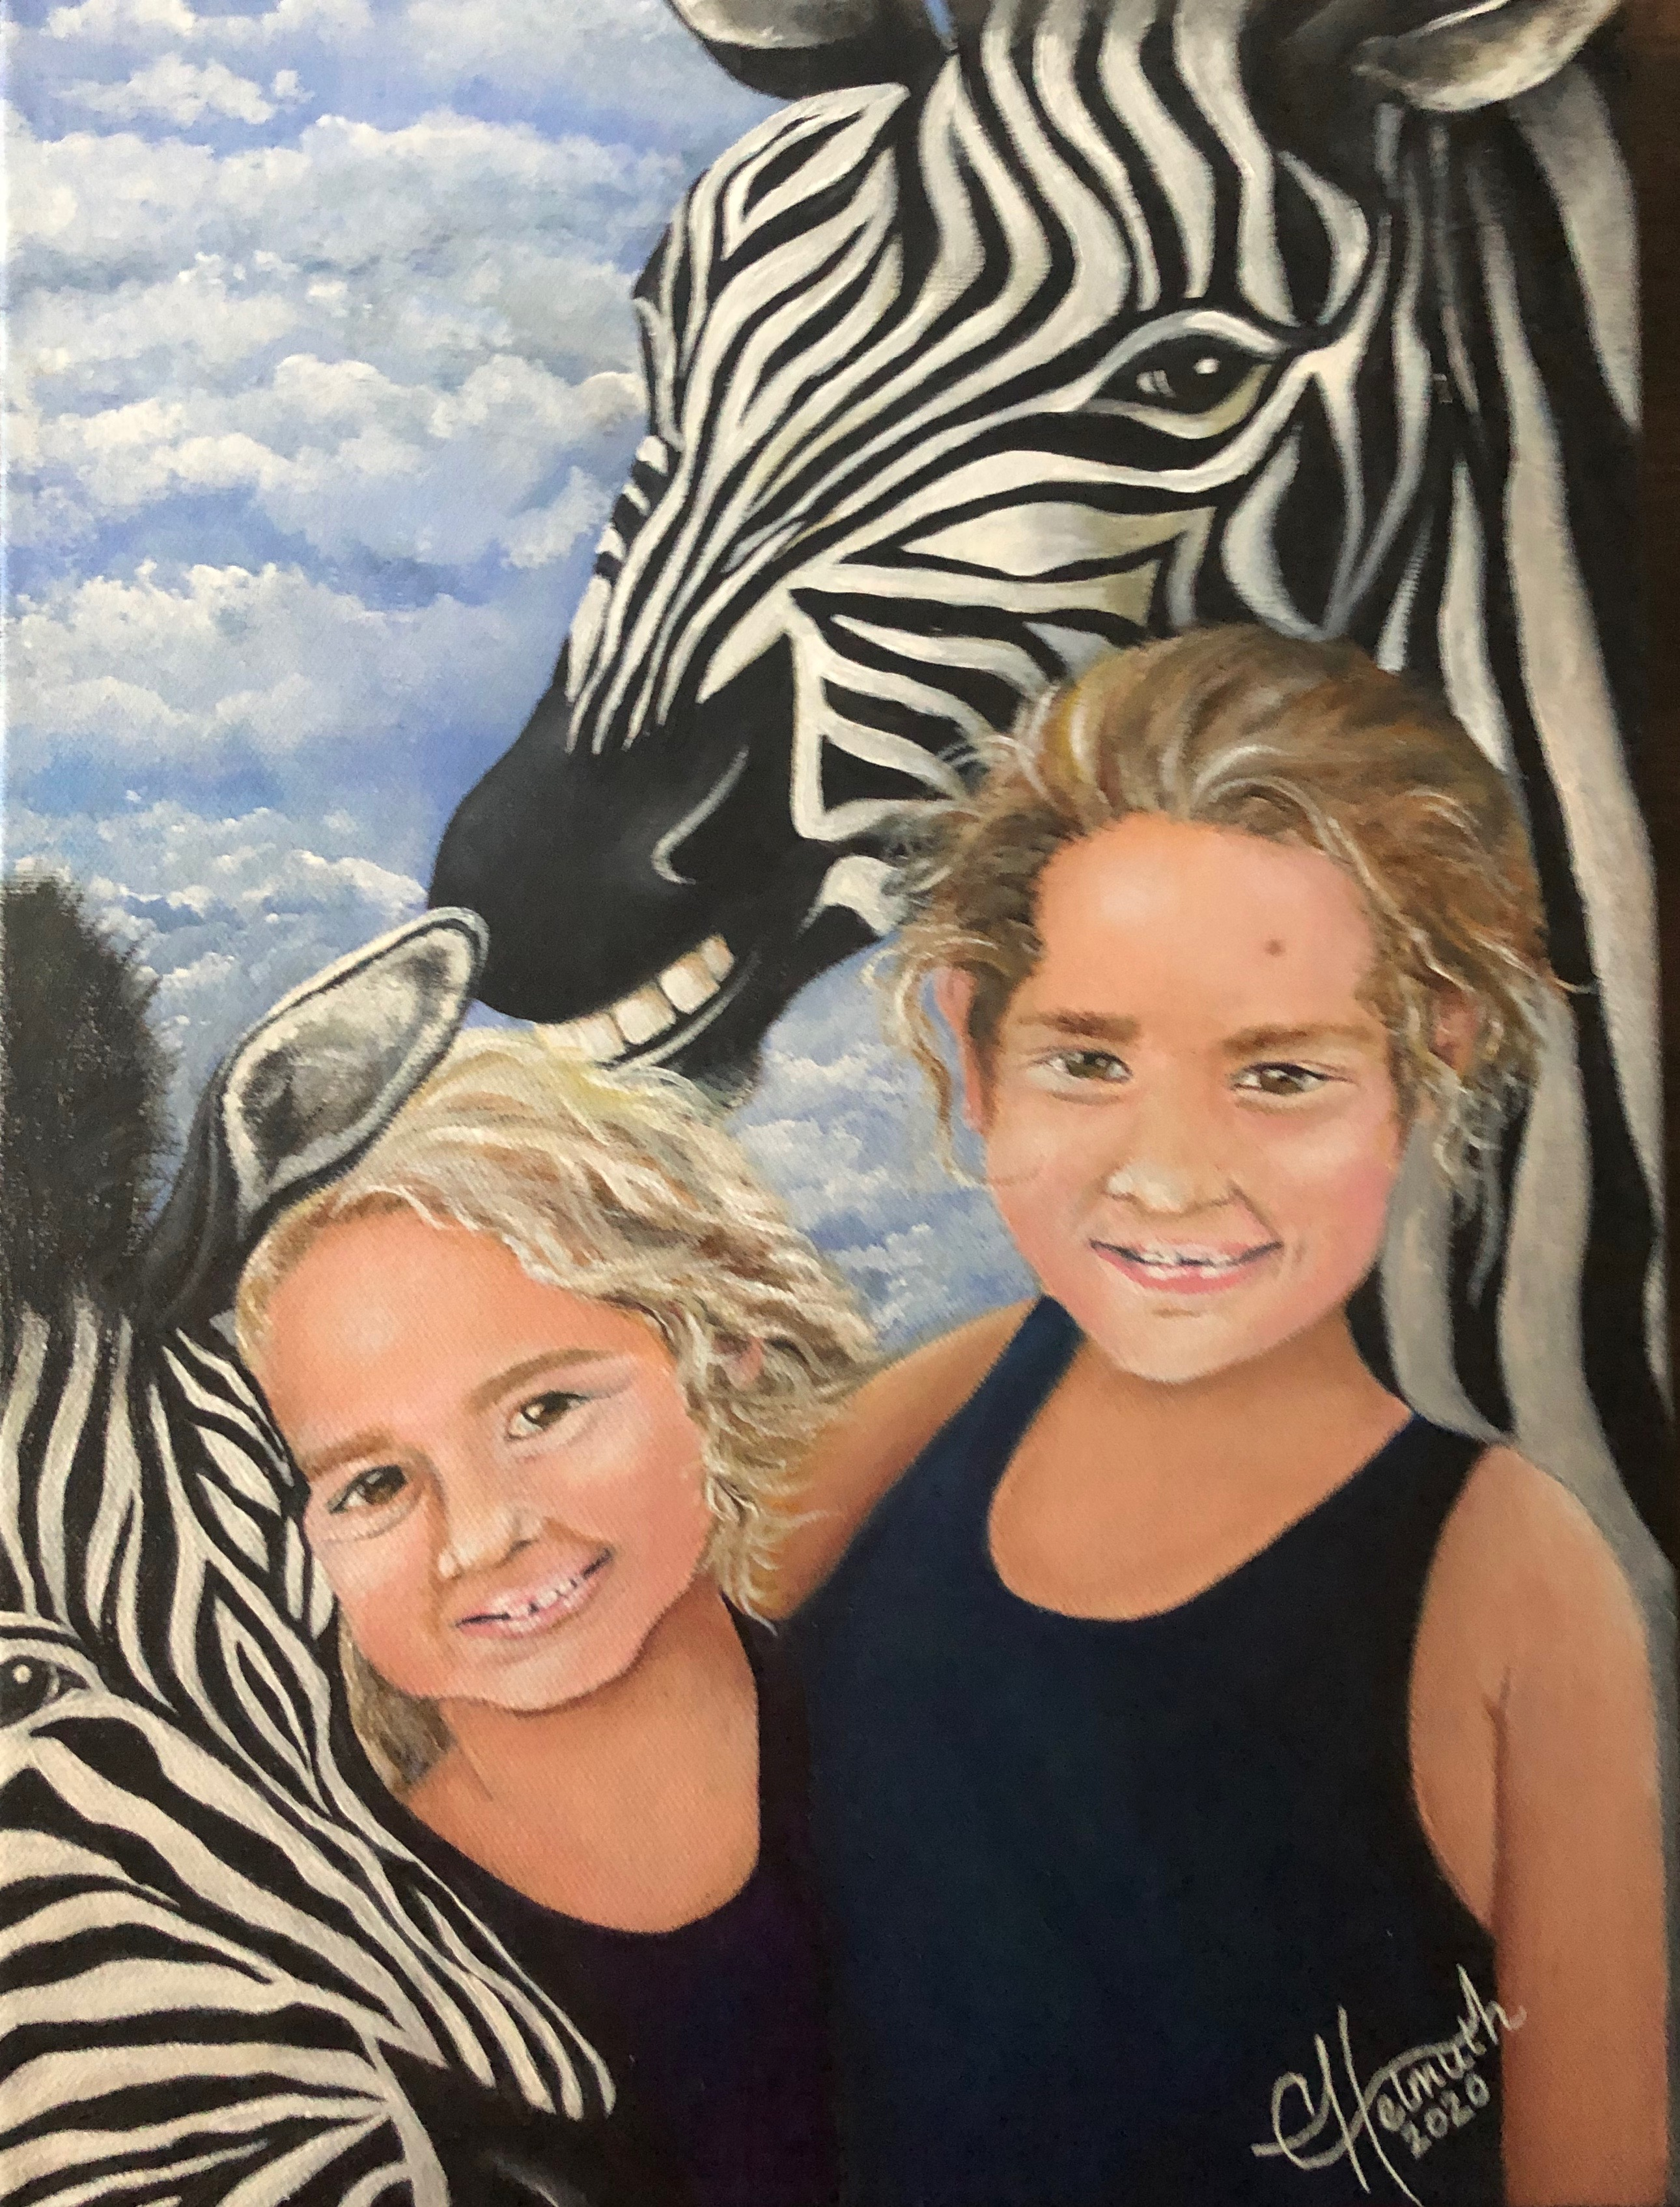 Natalie, Haley & a Couple Zebras